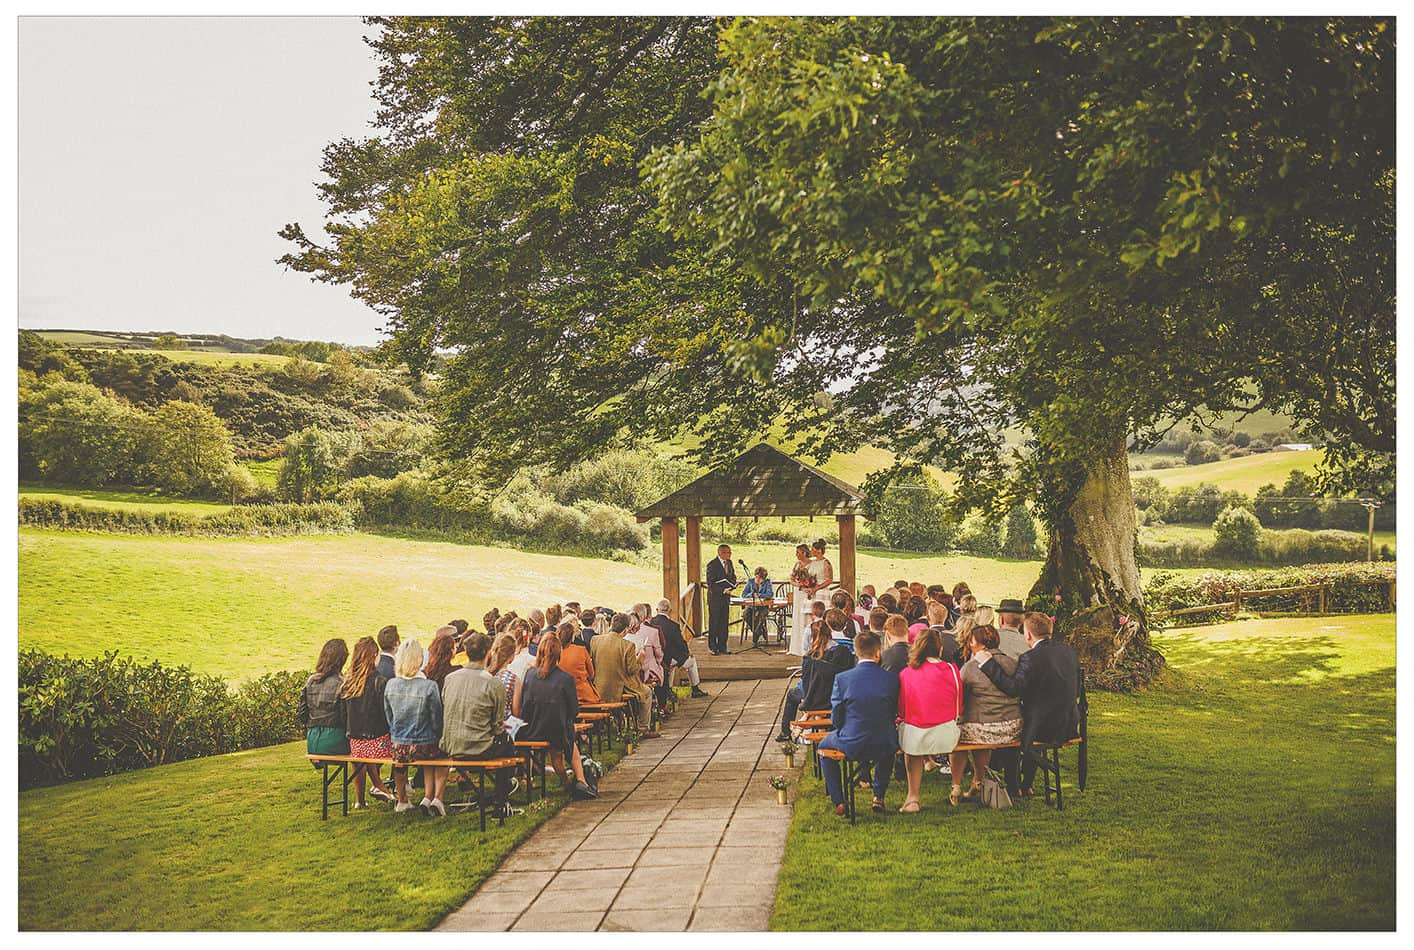 An outdoor wedding ceremony in the countryside